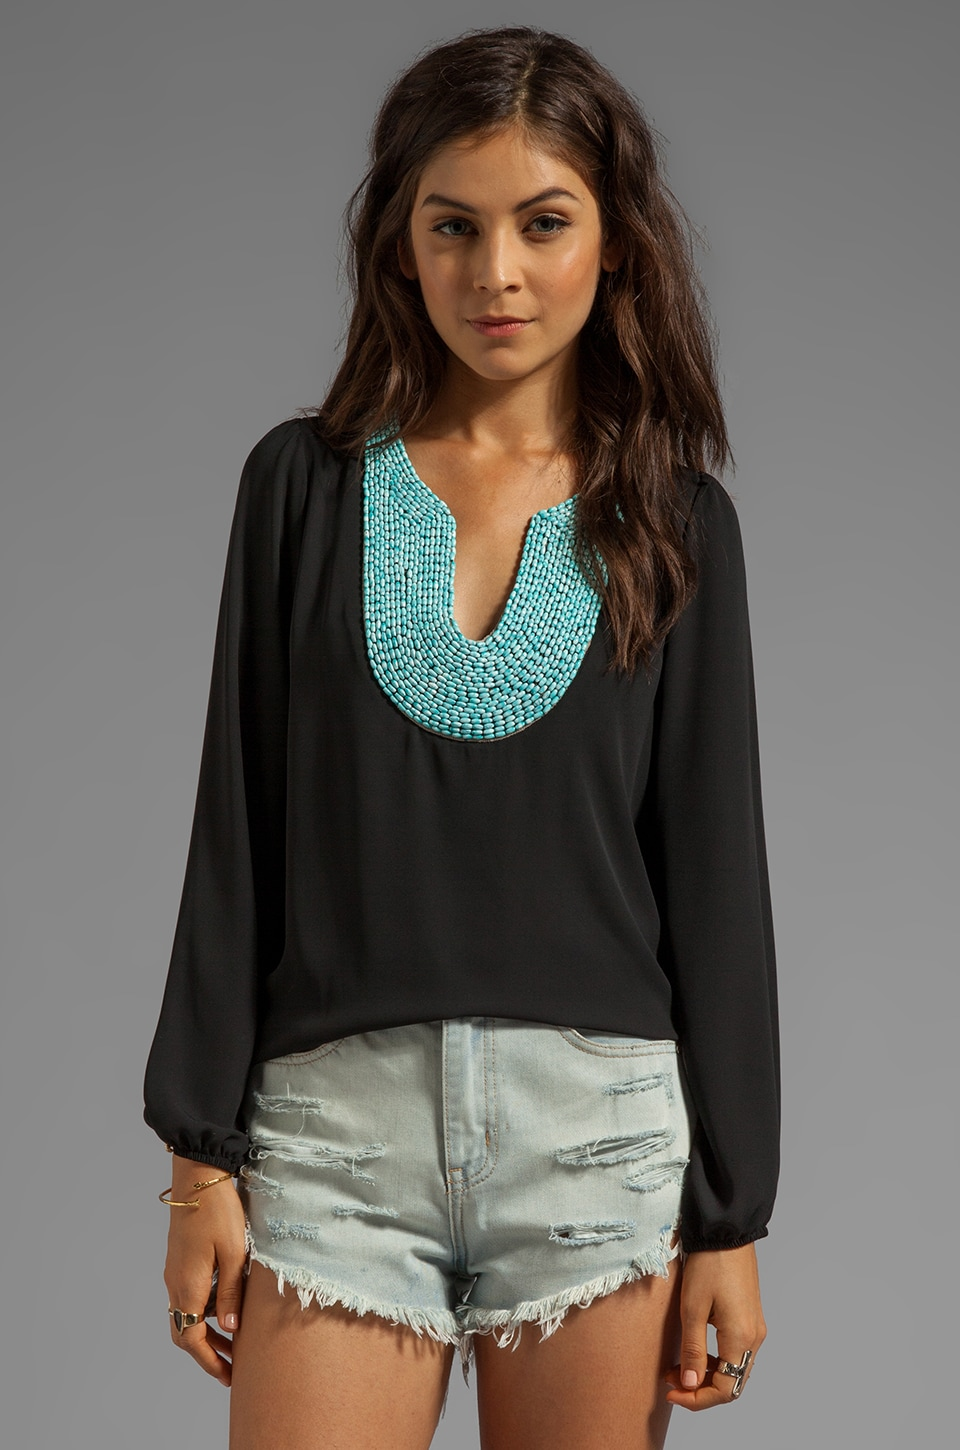 Eight Sixty Turquoise Beading Blouse in Black